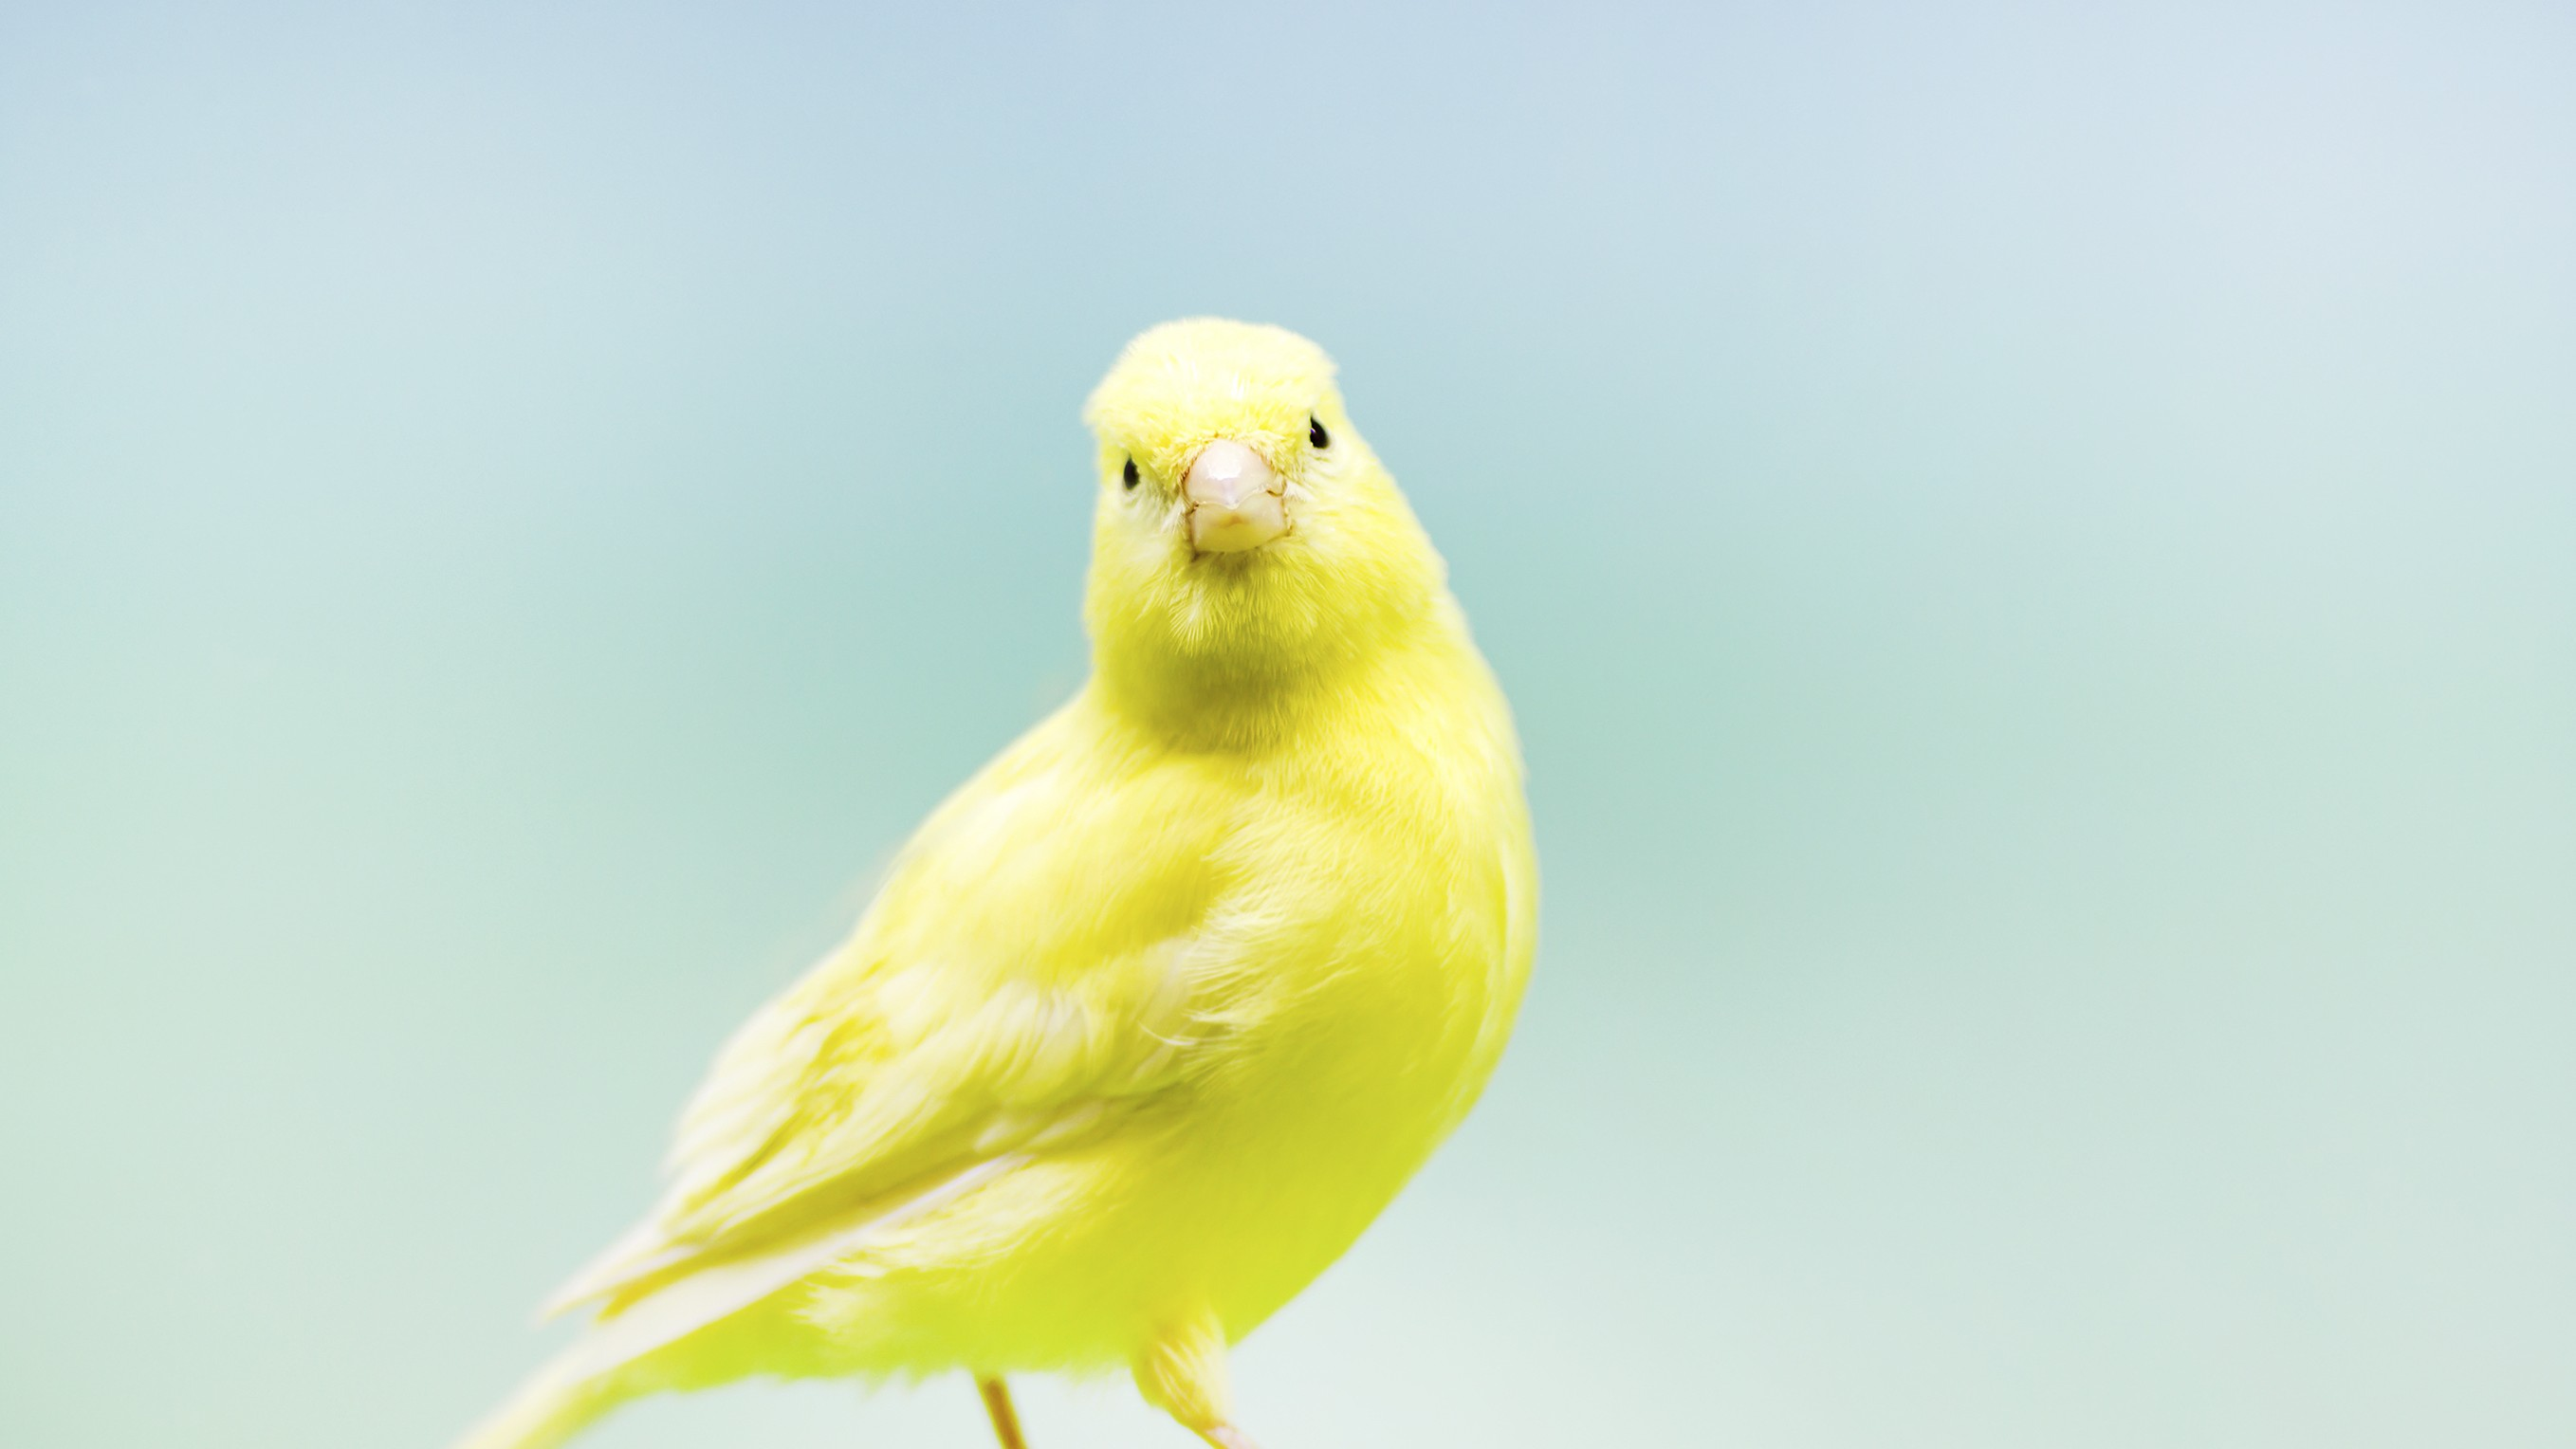 Warrant Canary for Activist Email Service Riseup Seemingly Expires